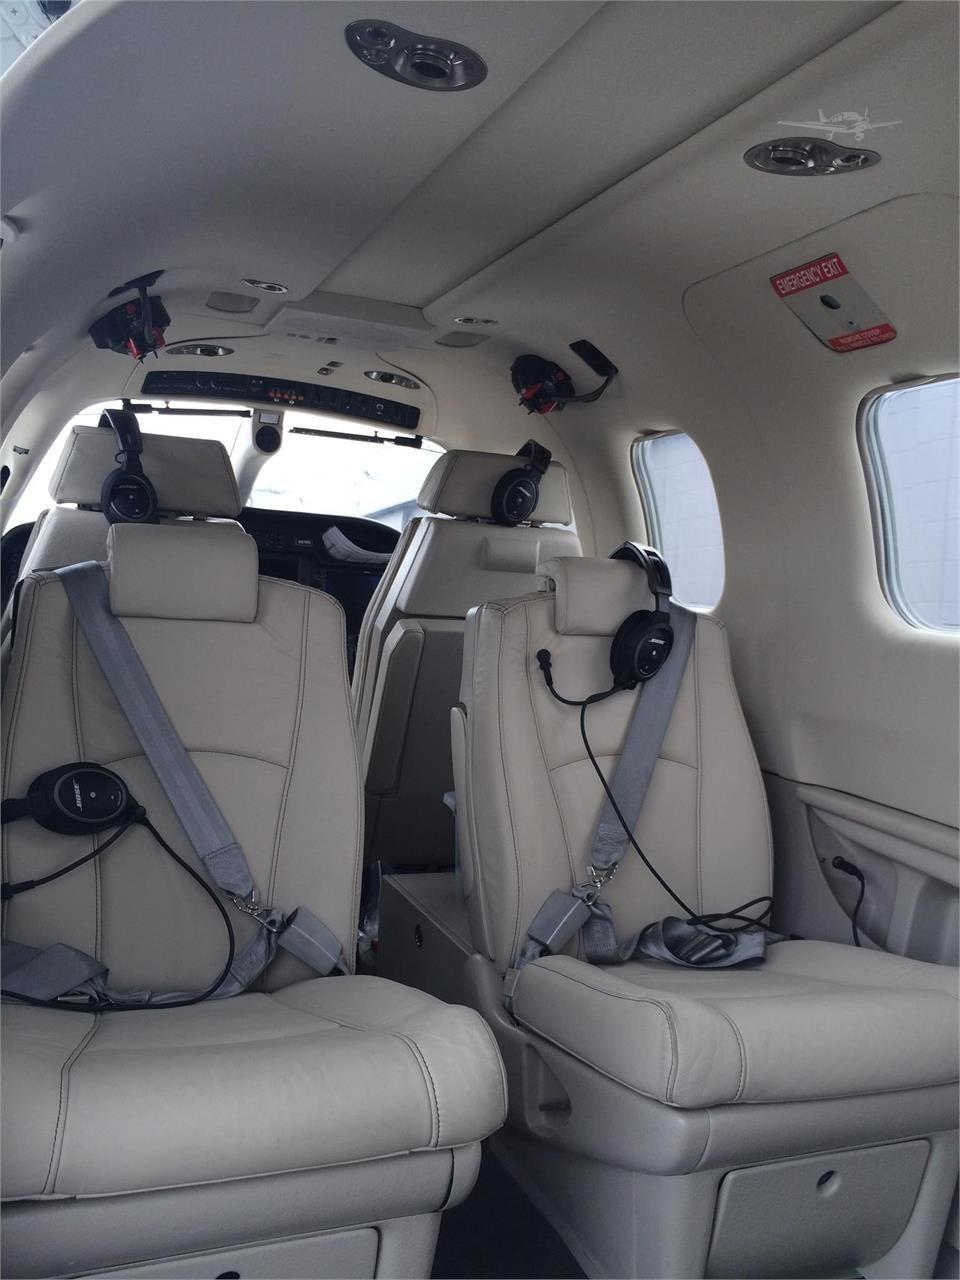 2010 Socata TBM 850 Photo 4